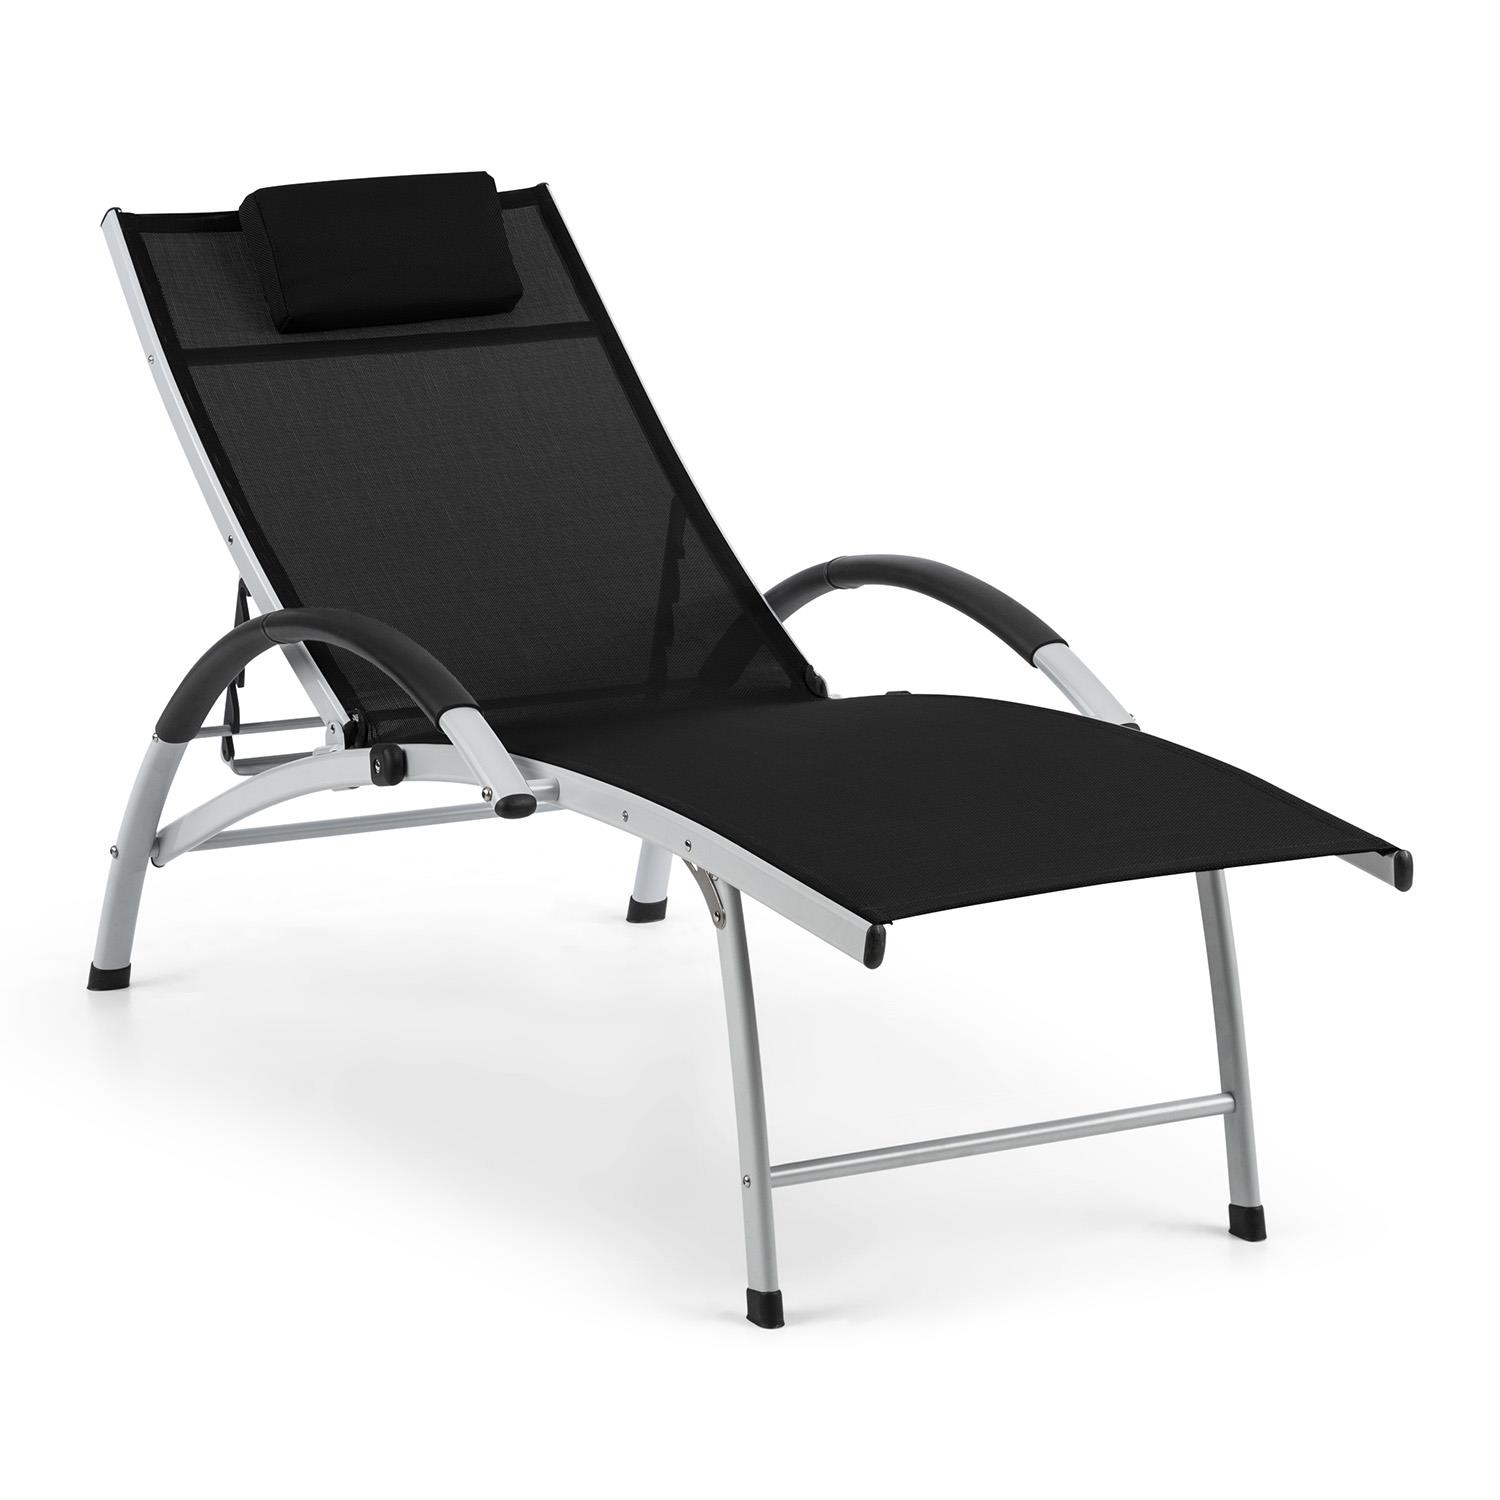 Sunbed  Garden Chair Patio Furniture home Reclining Aluminium Pillow Black